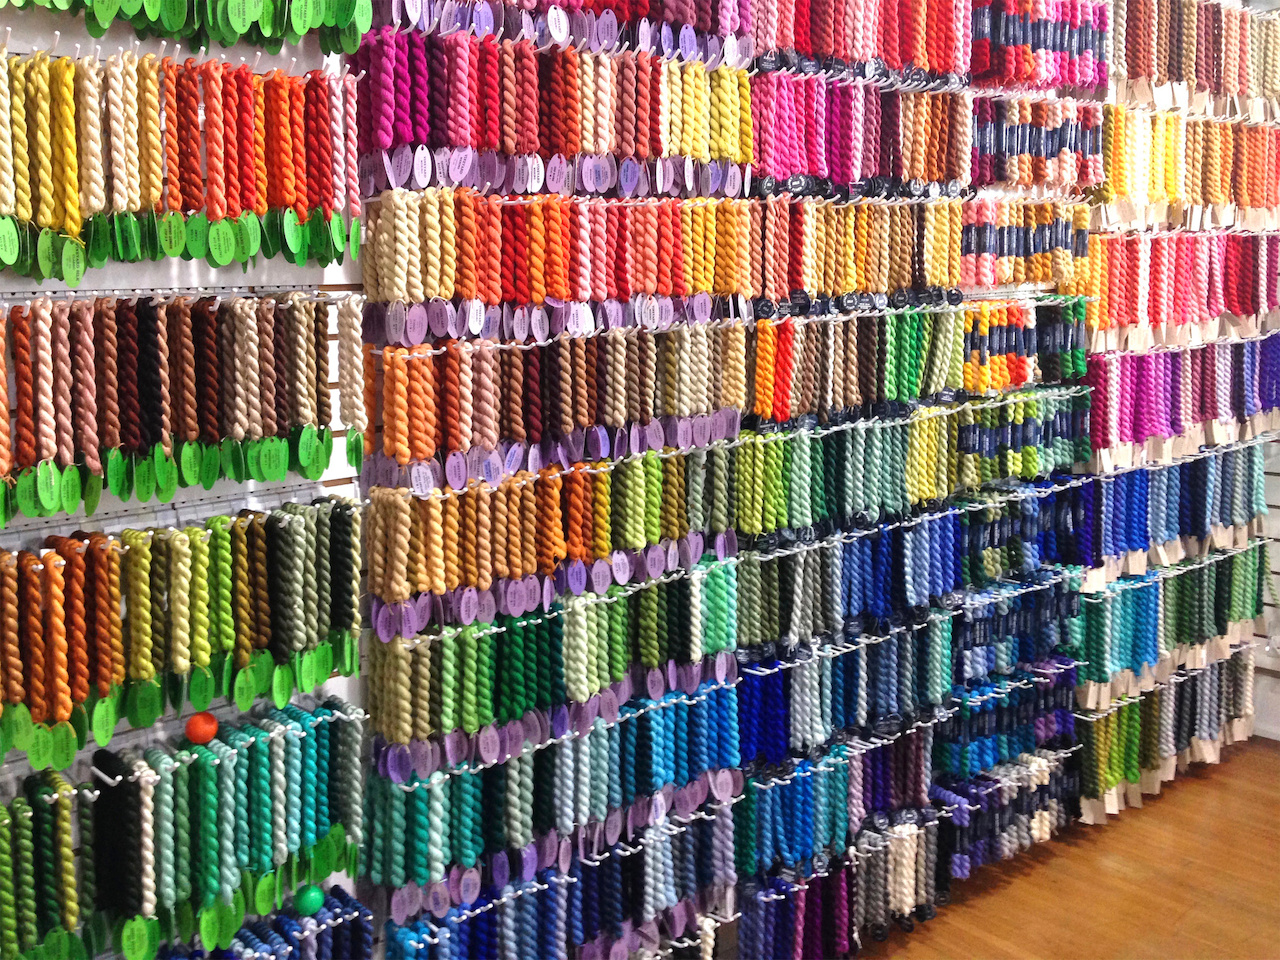 Rows and rows of brightly colored thread lines the walls of this needlepoint haven.